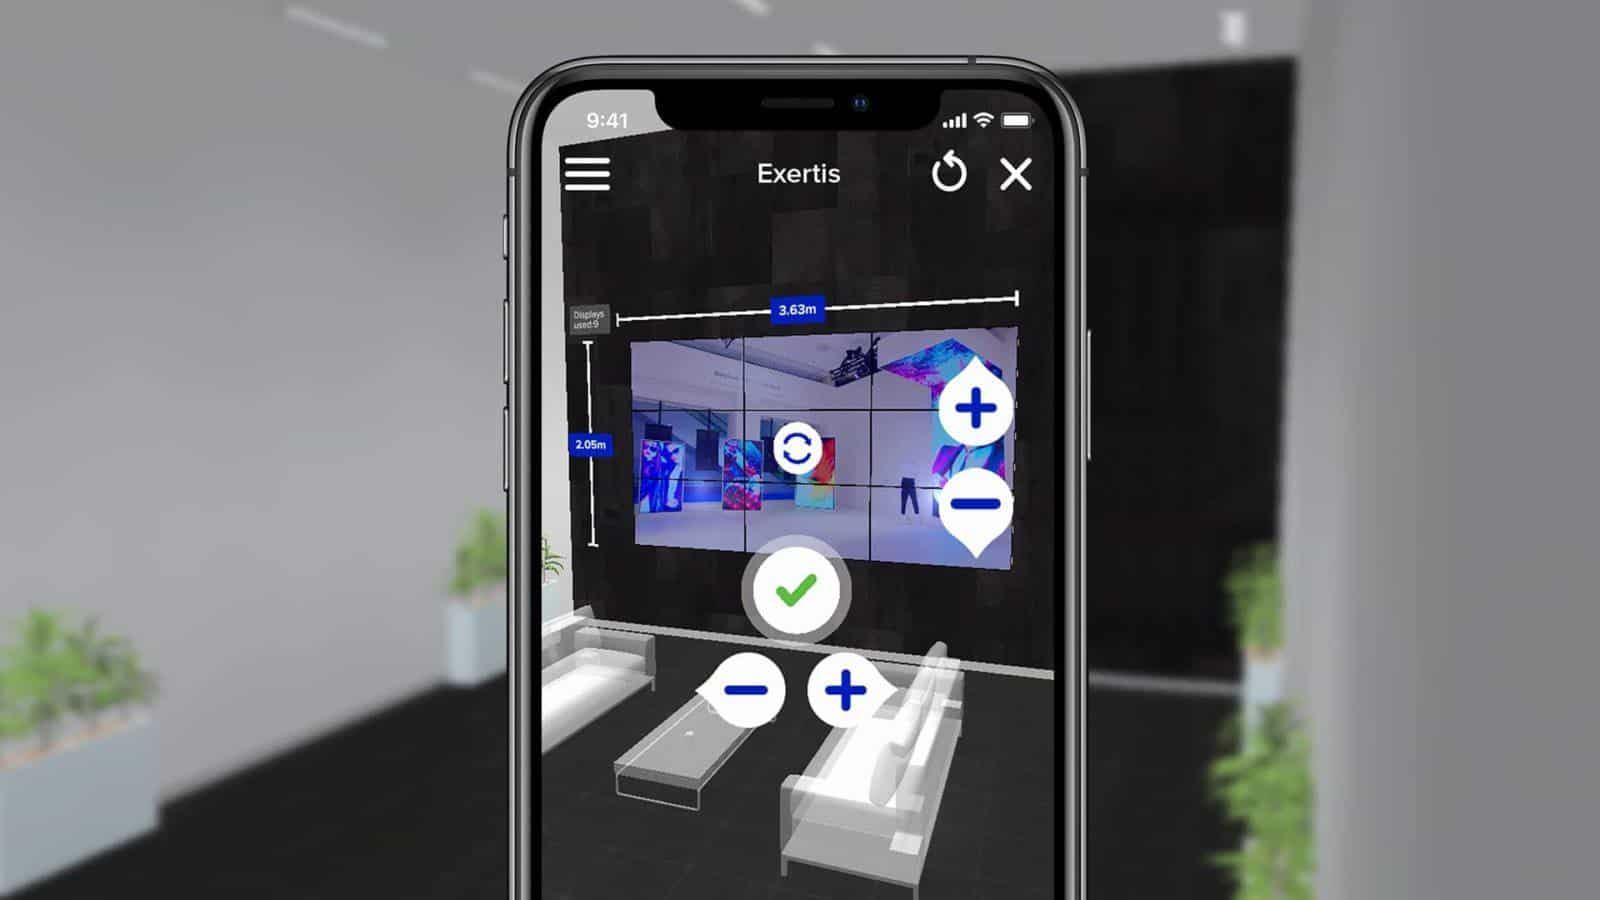 Exertis Augmented Reality B2B Sales Channel - Samsung LFD